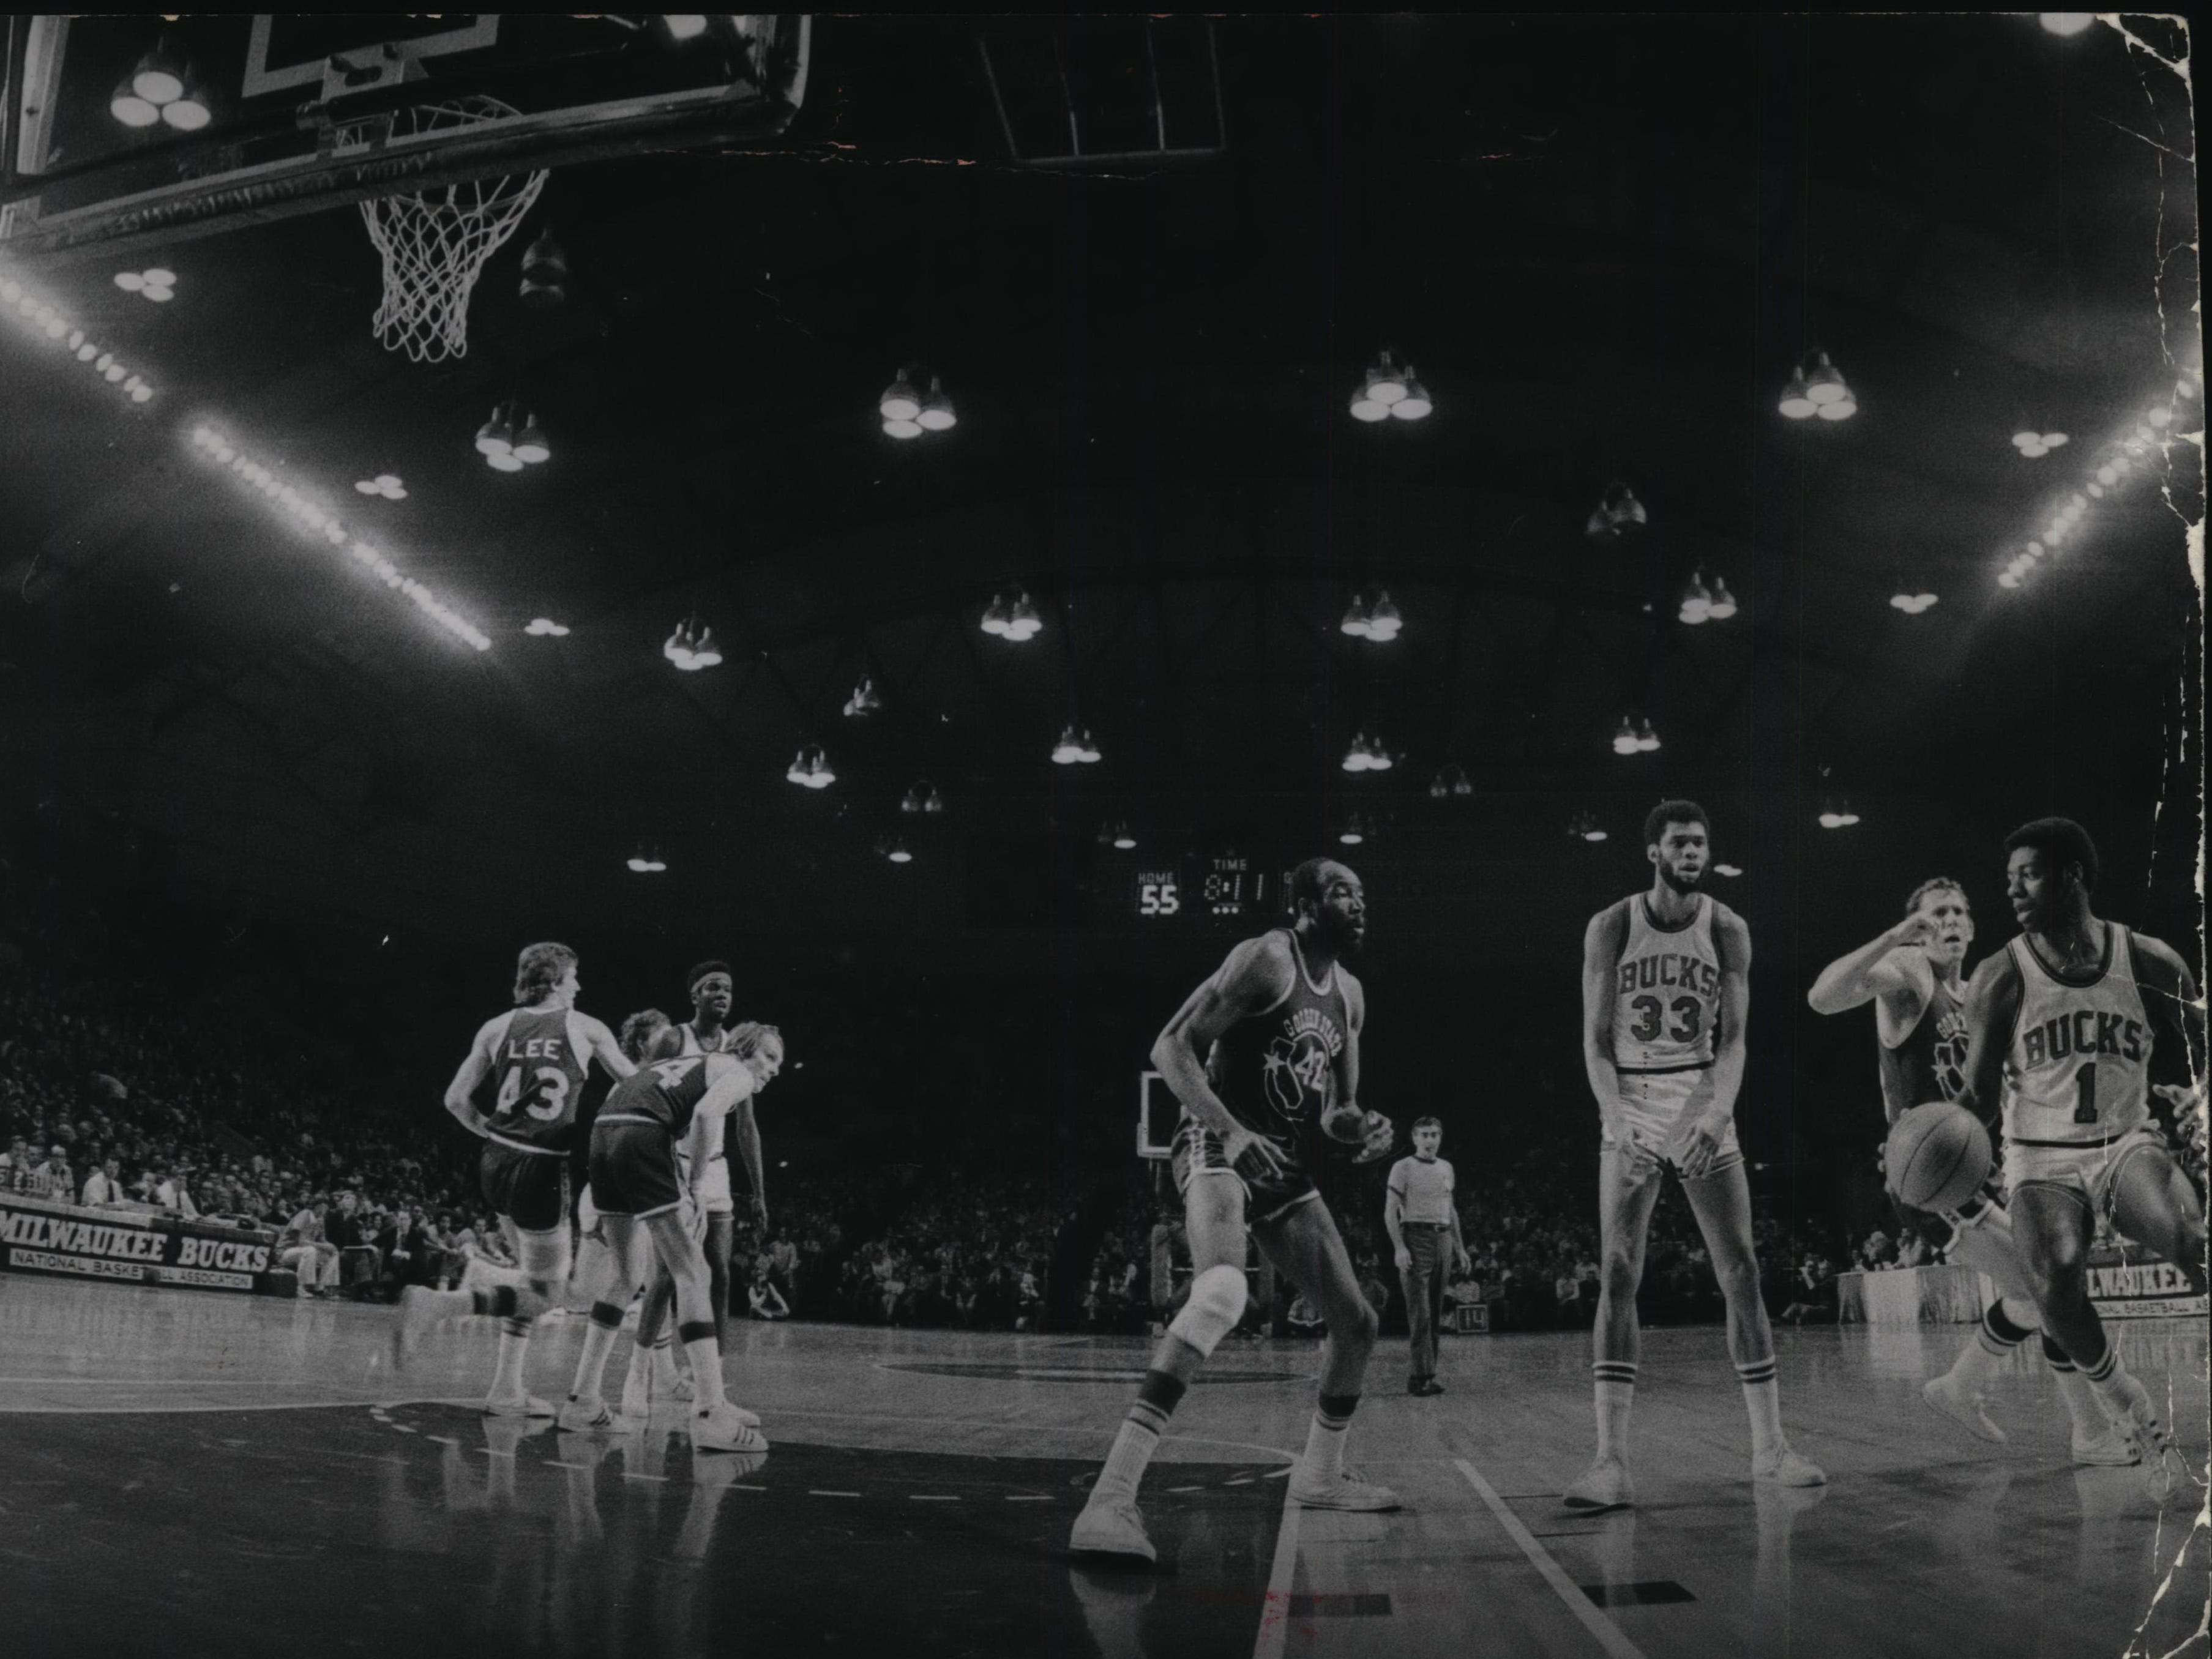 1973: Oscar Robertson (at right) drives toward the basket as the Bucks take on the Golden State Warriors in Game 1 of the NBA playoffs at a packed Milwaukee Arena on March 30, 1973. On the court at the time were four future Basketball Hall of Famers: Robertson, Golden State's Rick Barry (far left) and Nate Thurmond (center) and Kareem Abdul-Jabbar. The Bucks won, 110-90, but lost the series, 4-2. This photo was published in the March 31, 1973, Milwaukee Journal.